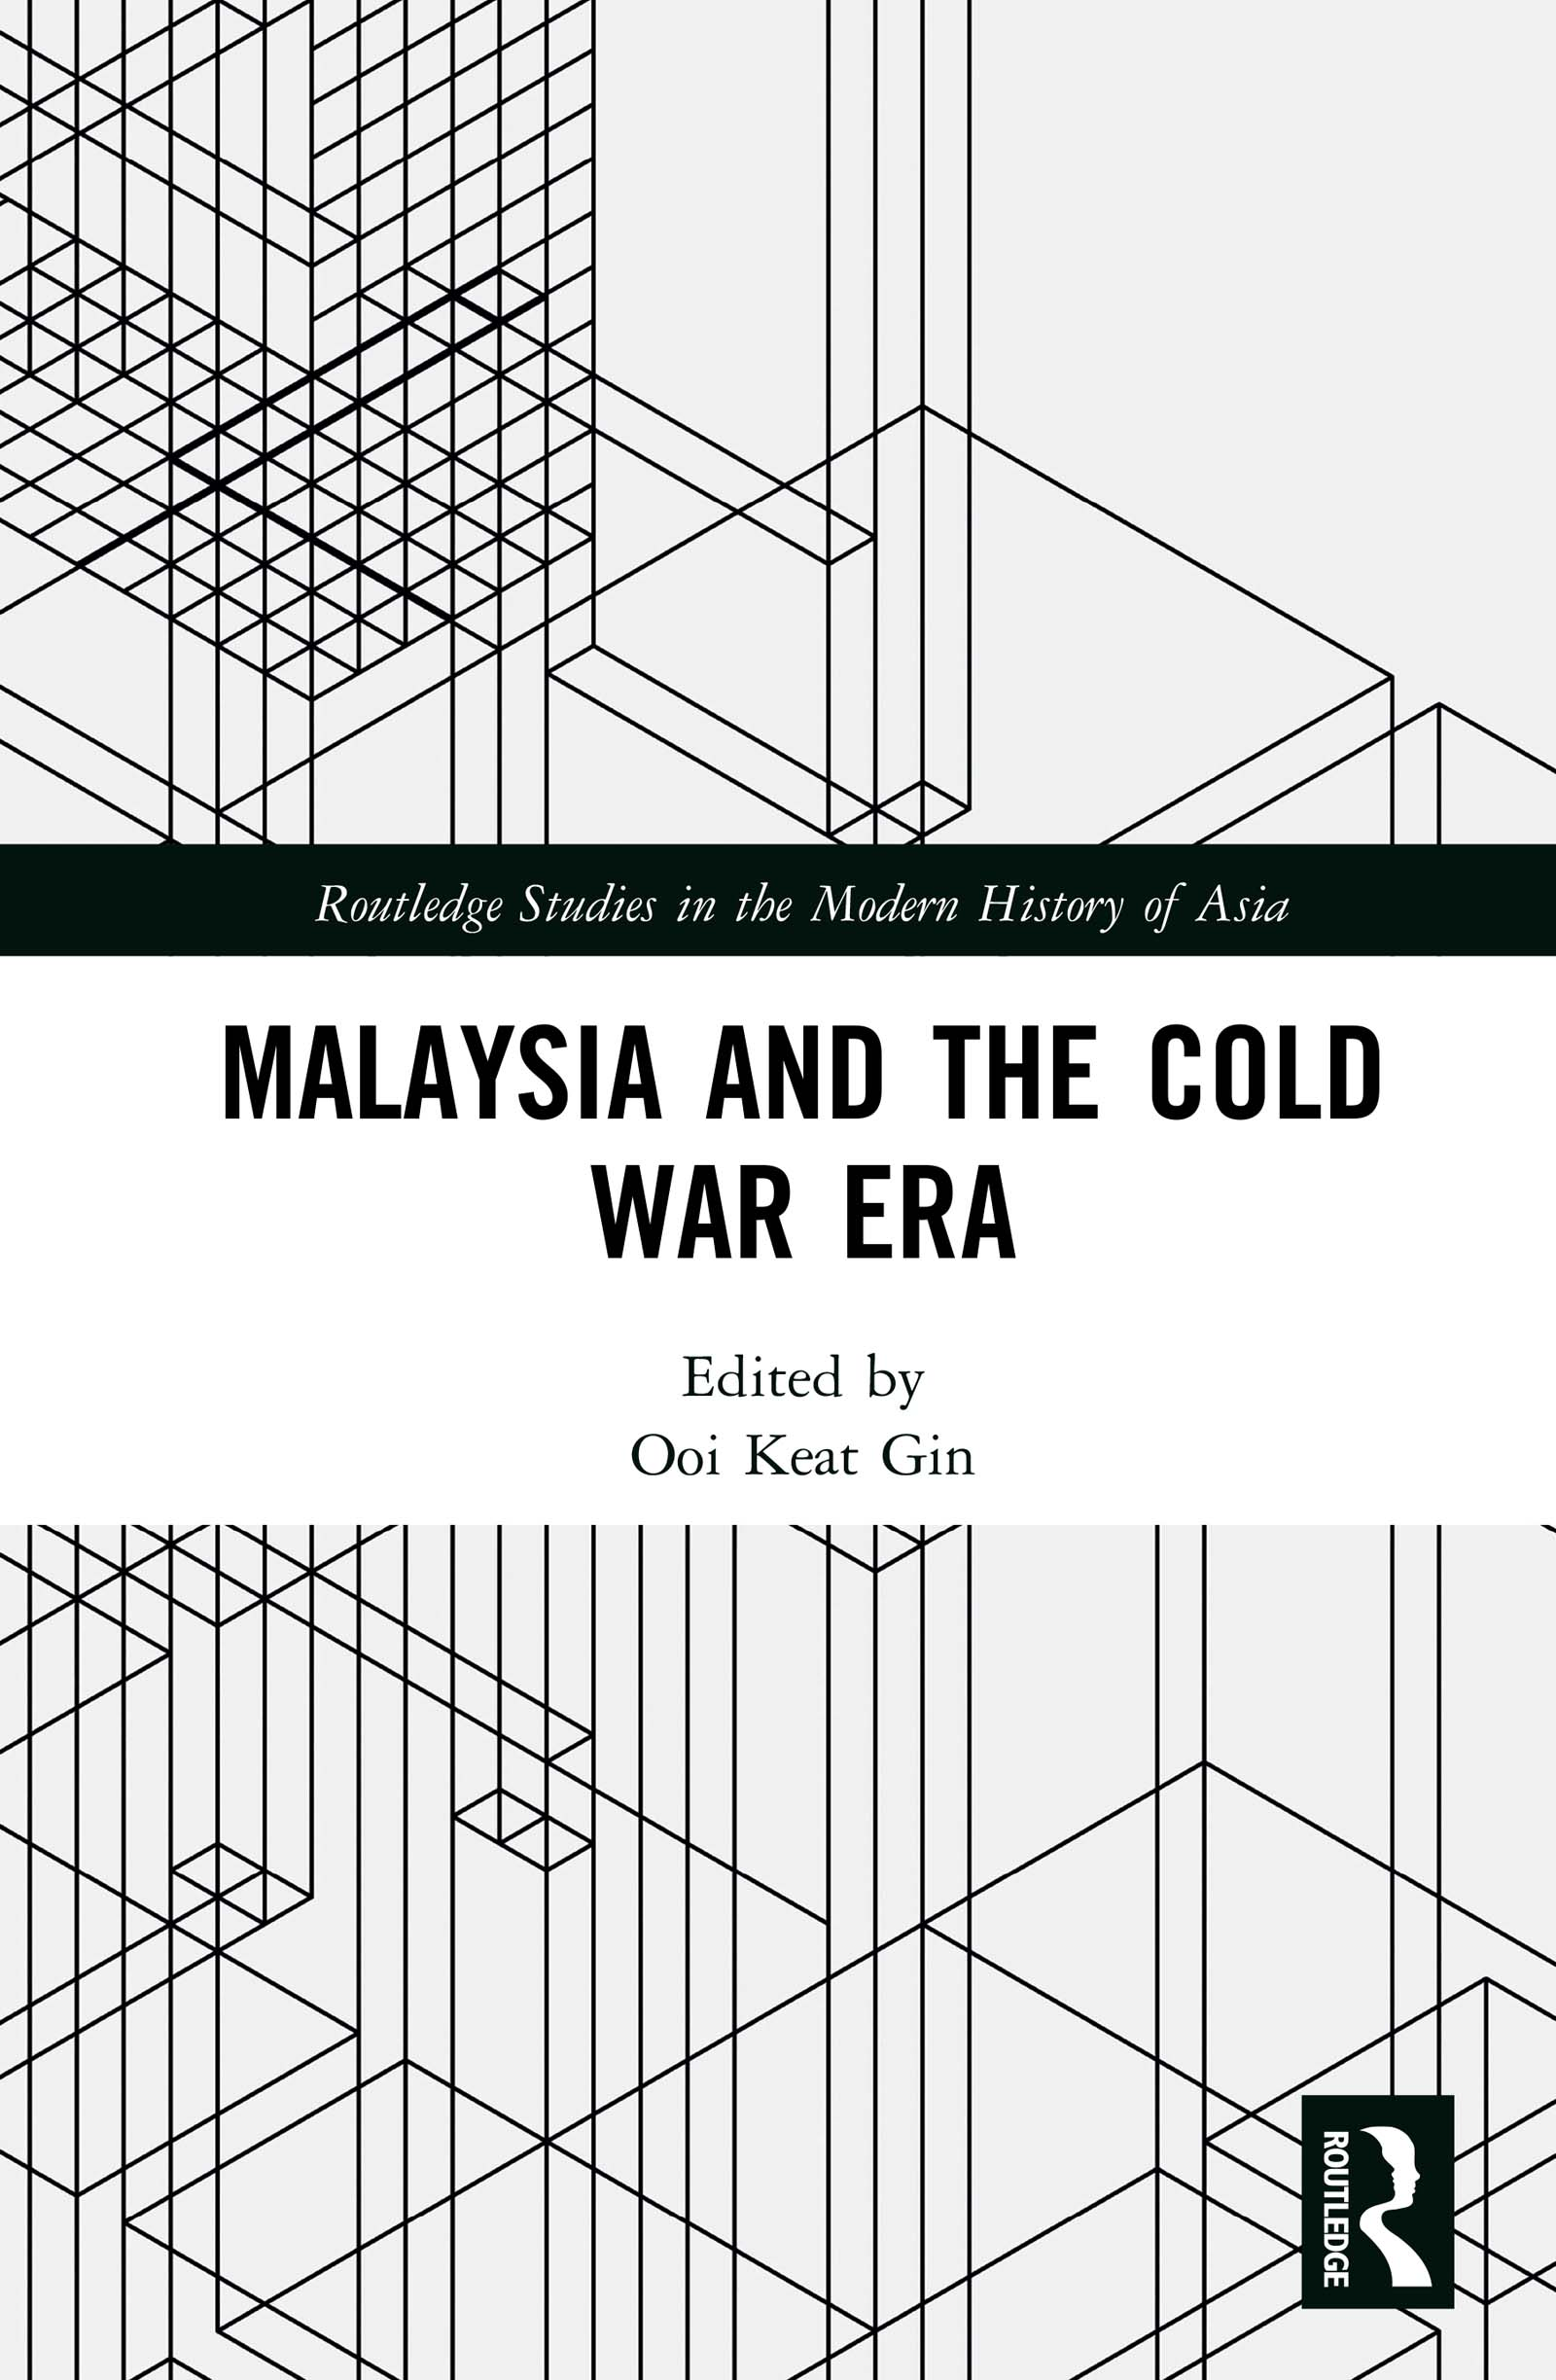 Malaysia, the Cold War and beyond